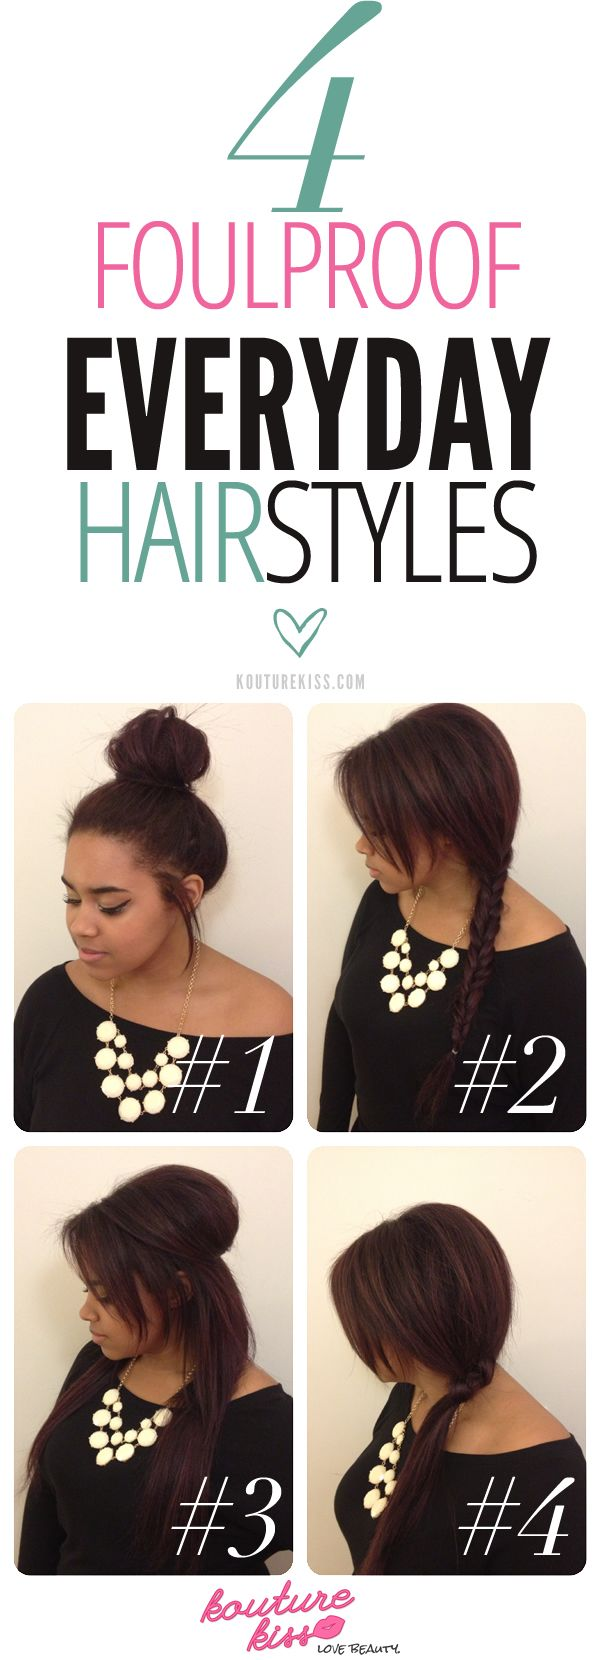 Peachy 1000 Images About Hair On Pinterest Back To School Hairstyles Hairstyles For Men Maxibearus